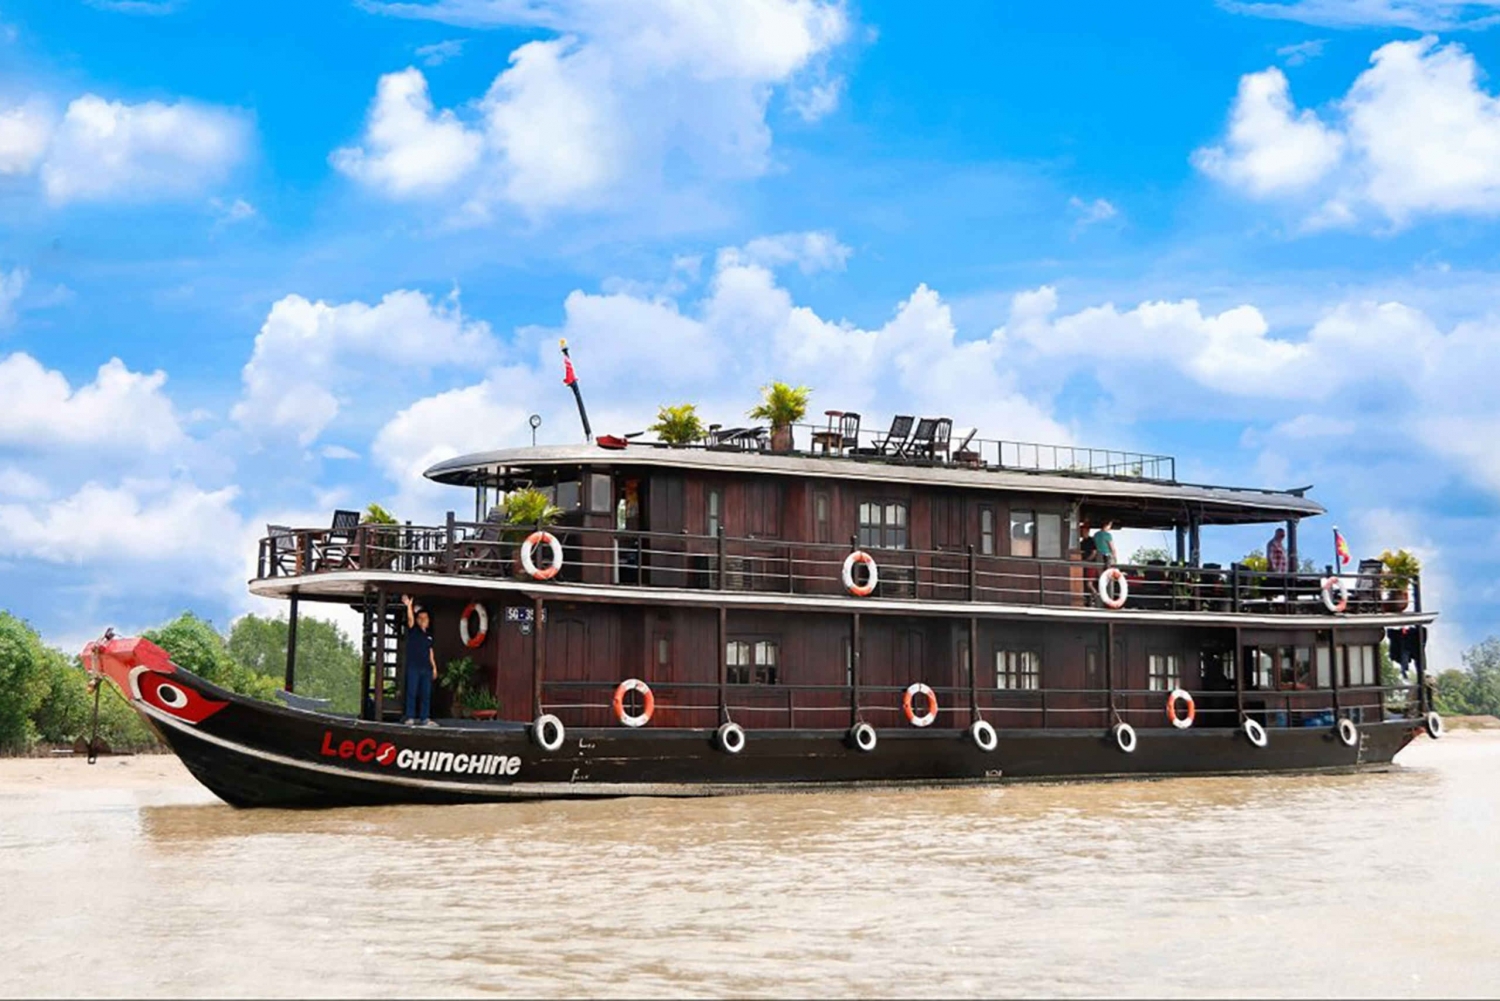 Mekong Delta 7-Day Cruise: Saigon to Angkor Wat